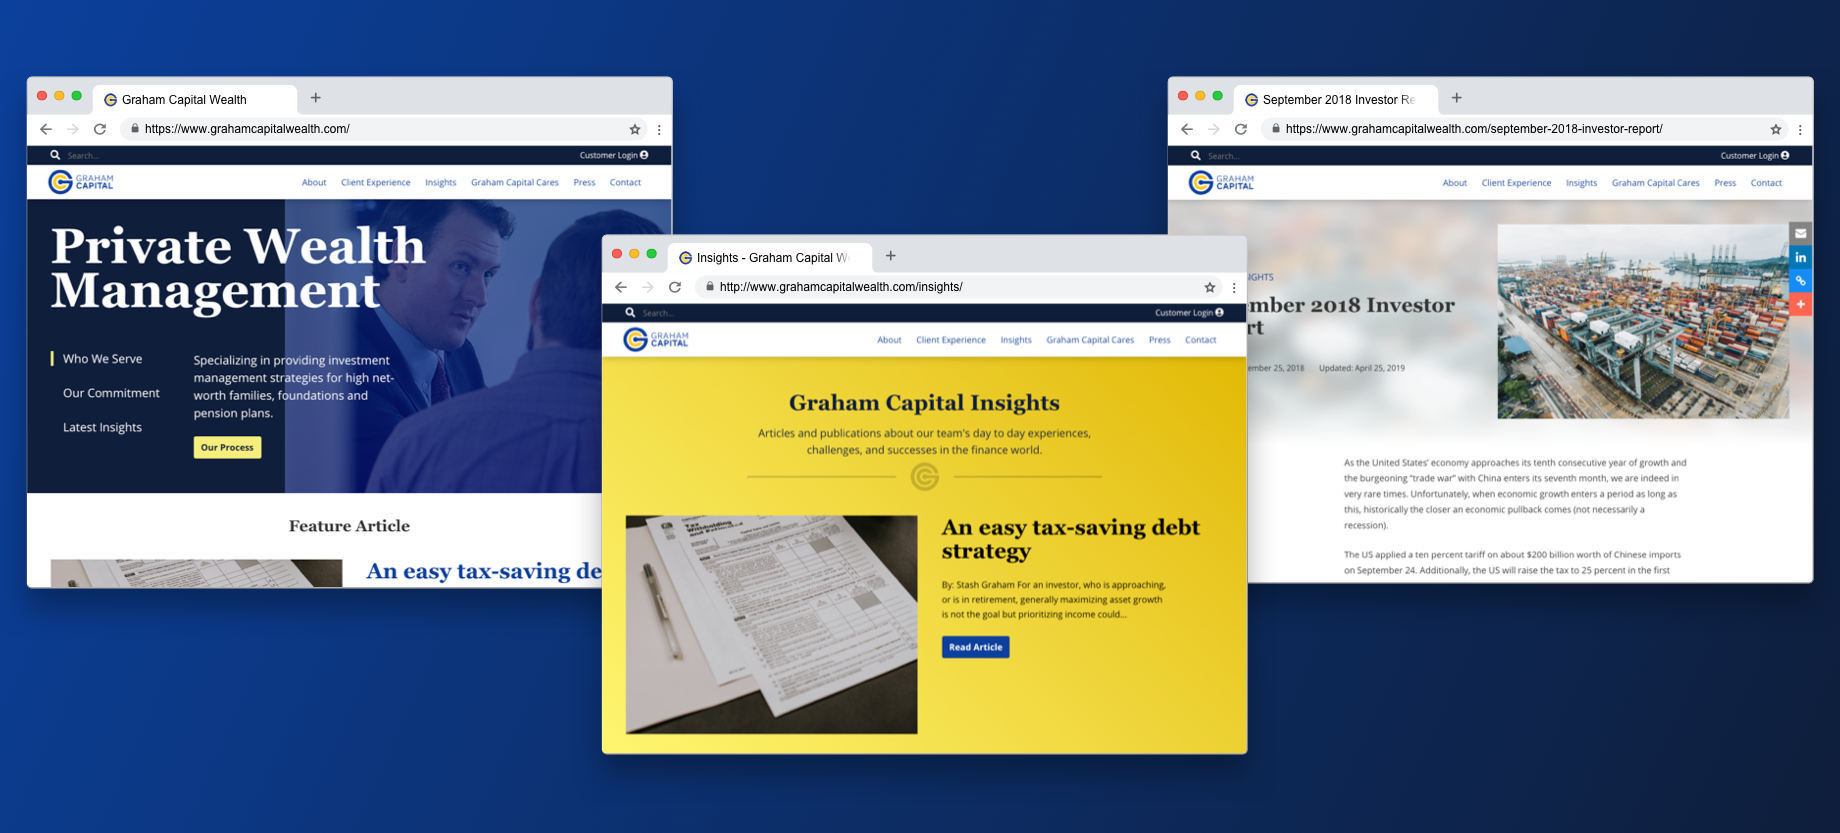 Three browser windows. The first displays the Graham Capital homepage, the second displays the Graham Capital blog, and the third displays a blog post.